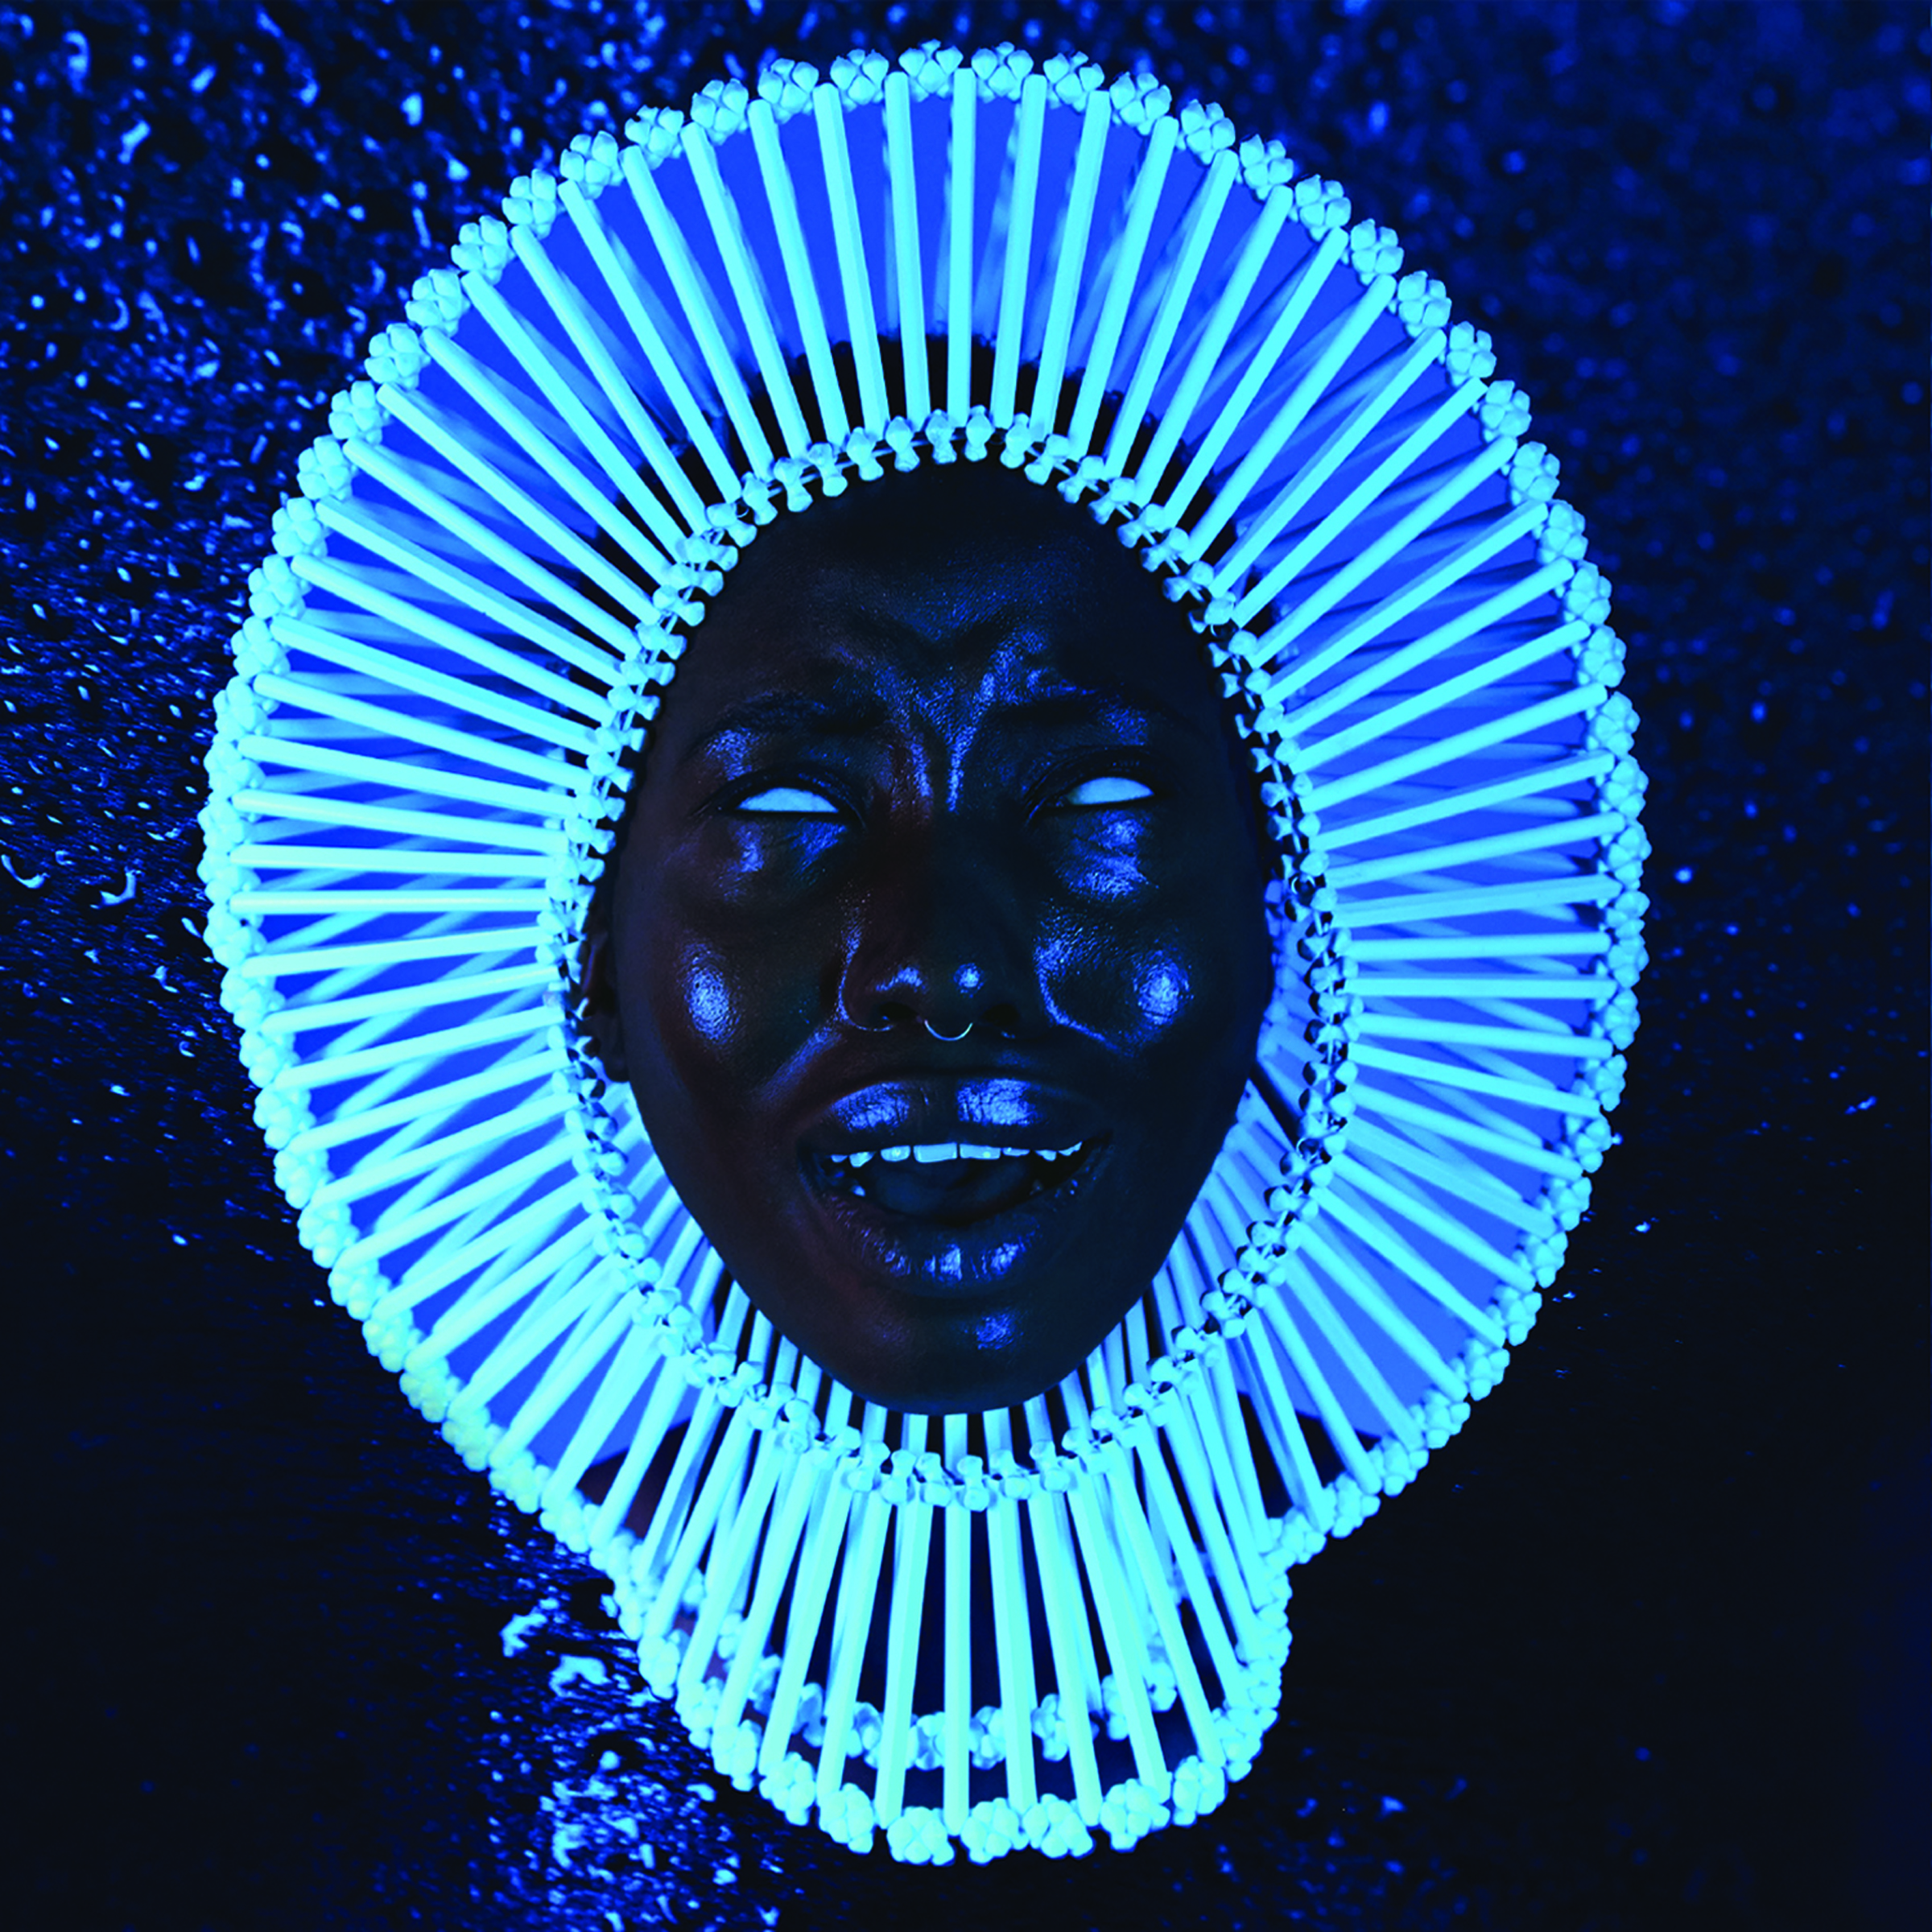 WIN! 1/5 Childish Gambino 'Awaken, My Love!' Albums Artwork2